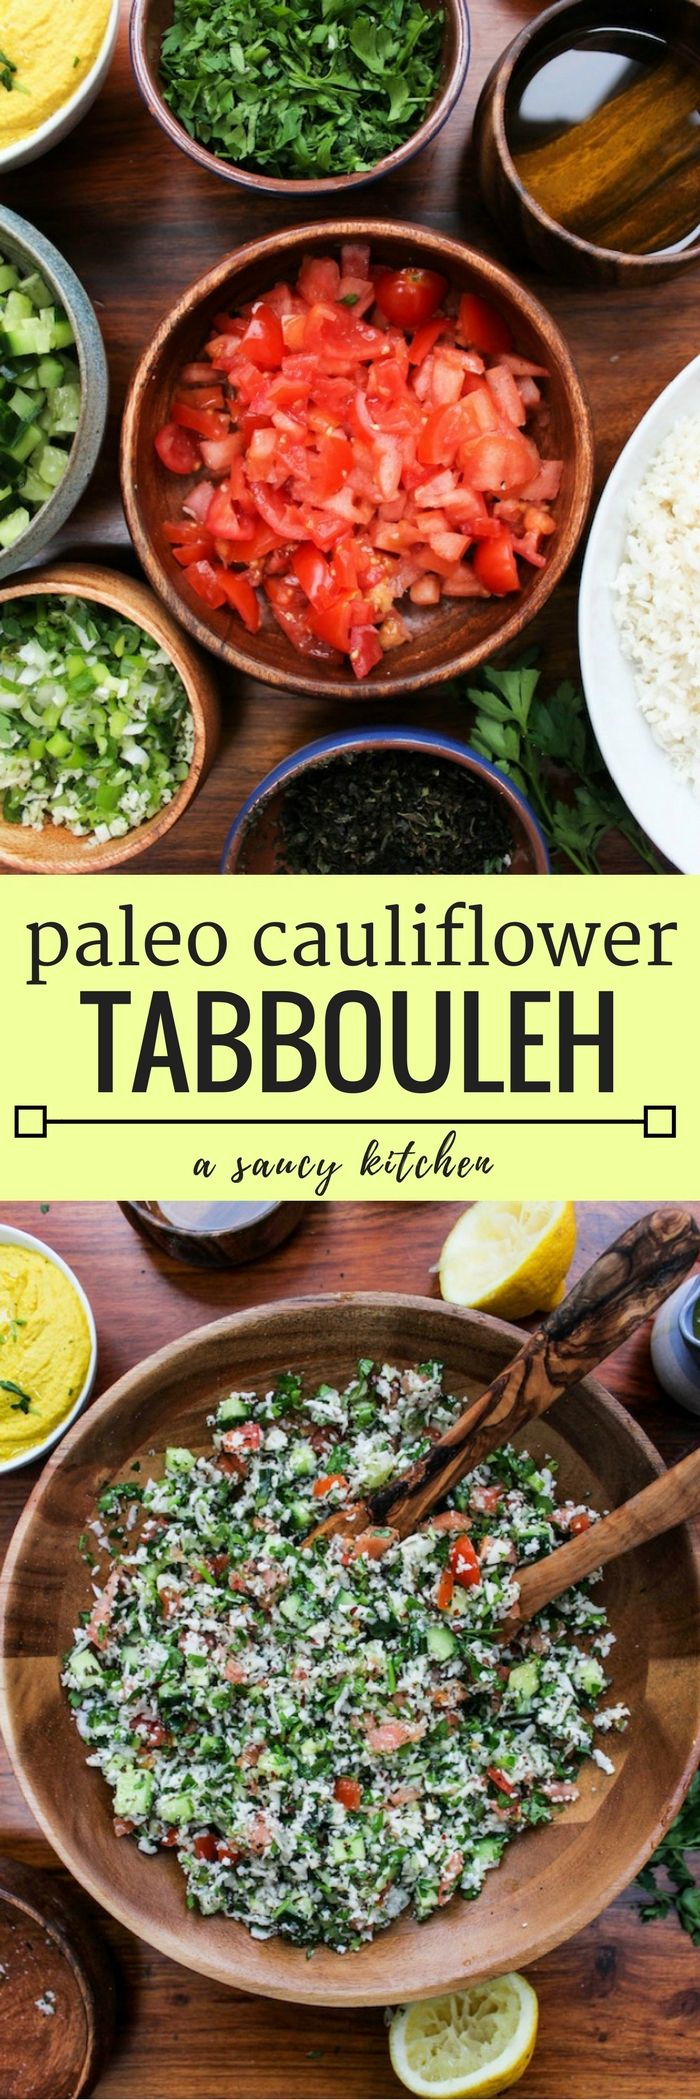 ... Tabbouleh - a Middle Eastern classic made gluten free   Vegan + Paleo